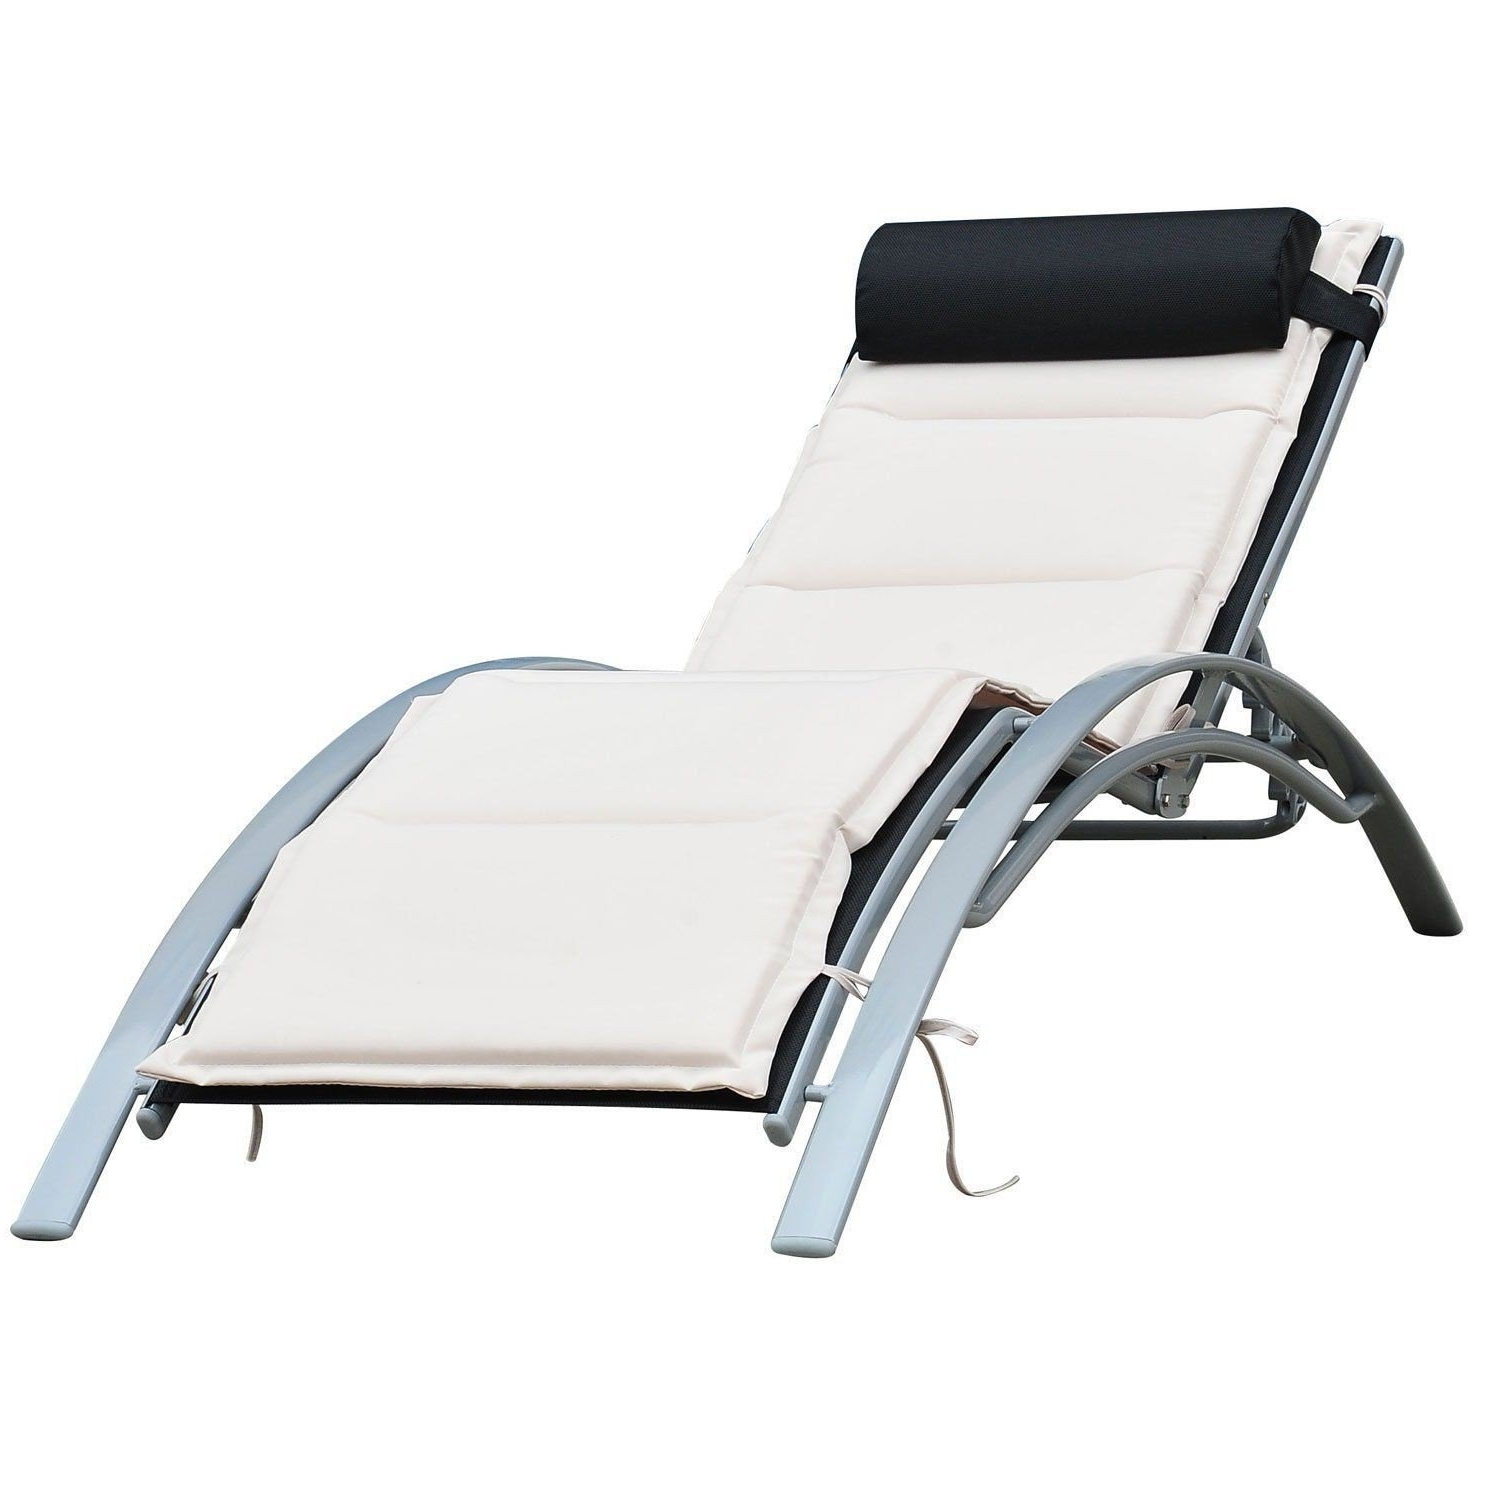 Outsunny Patio Reclining Chaise Lounge Chair With Cushion – Black Pertaining To Popular Chaise Lounge Reclining Chairs For Outdoor (View 13 of 15)